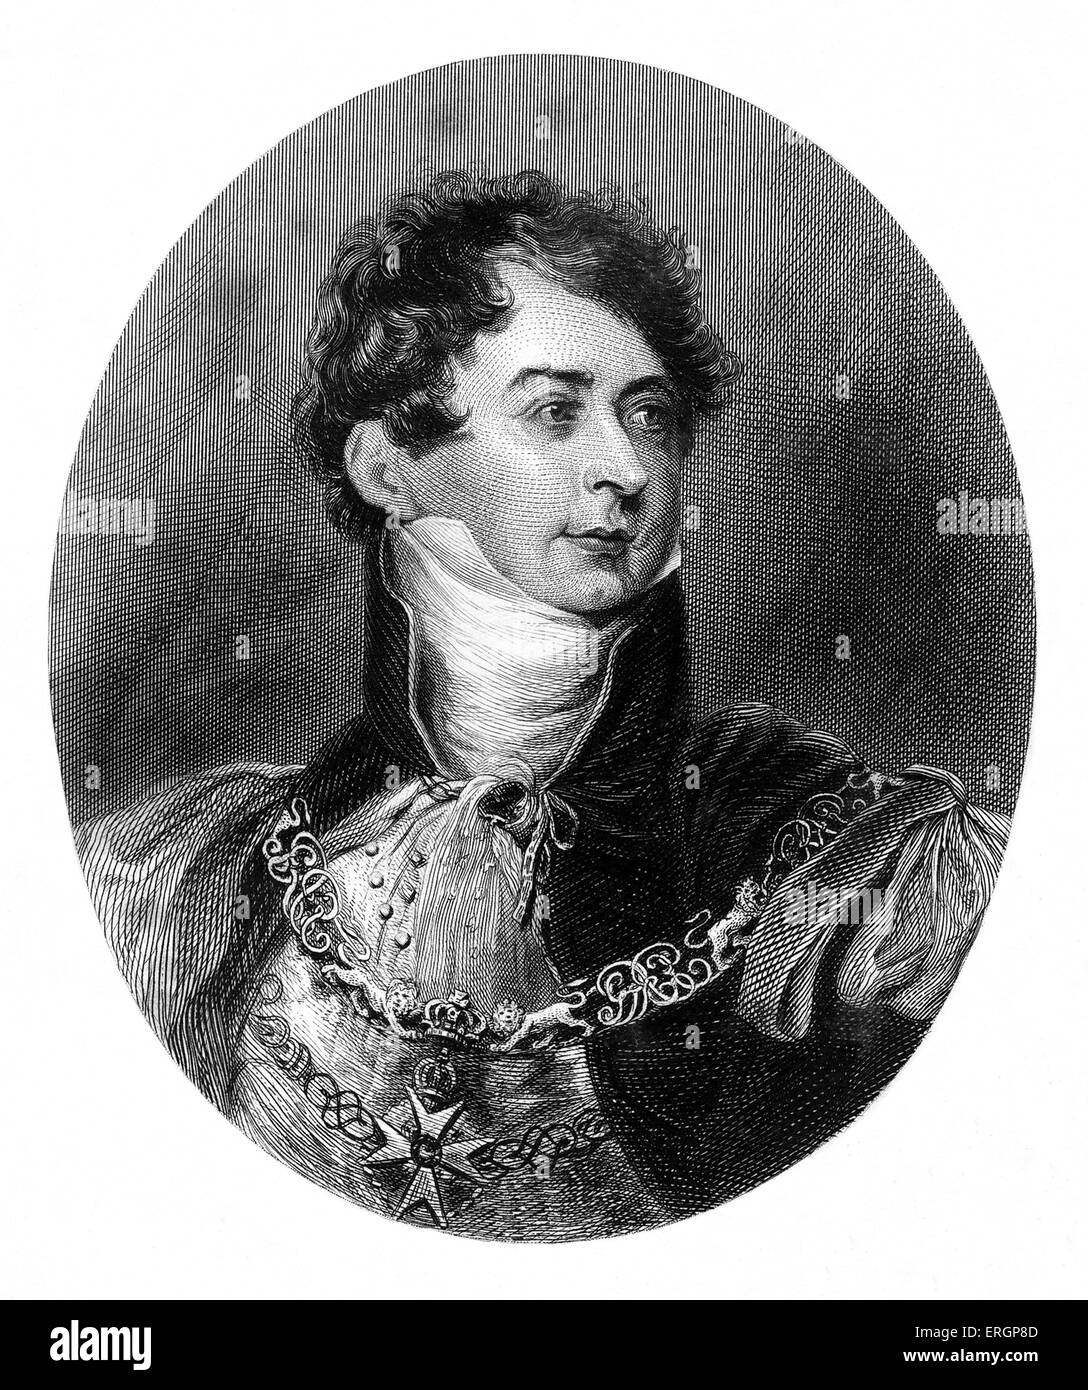 King George IV, portrait. Reigned 1820 - 1830. George acted as Regent for his father from 1811-1820. - Stock Image